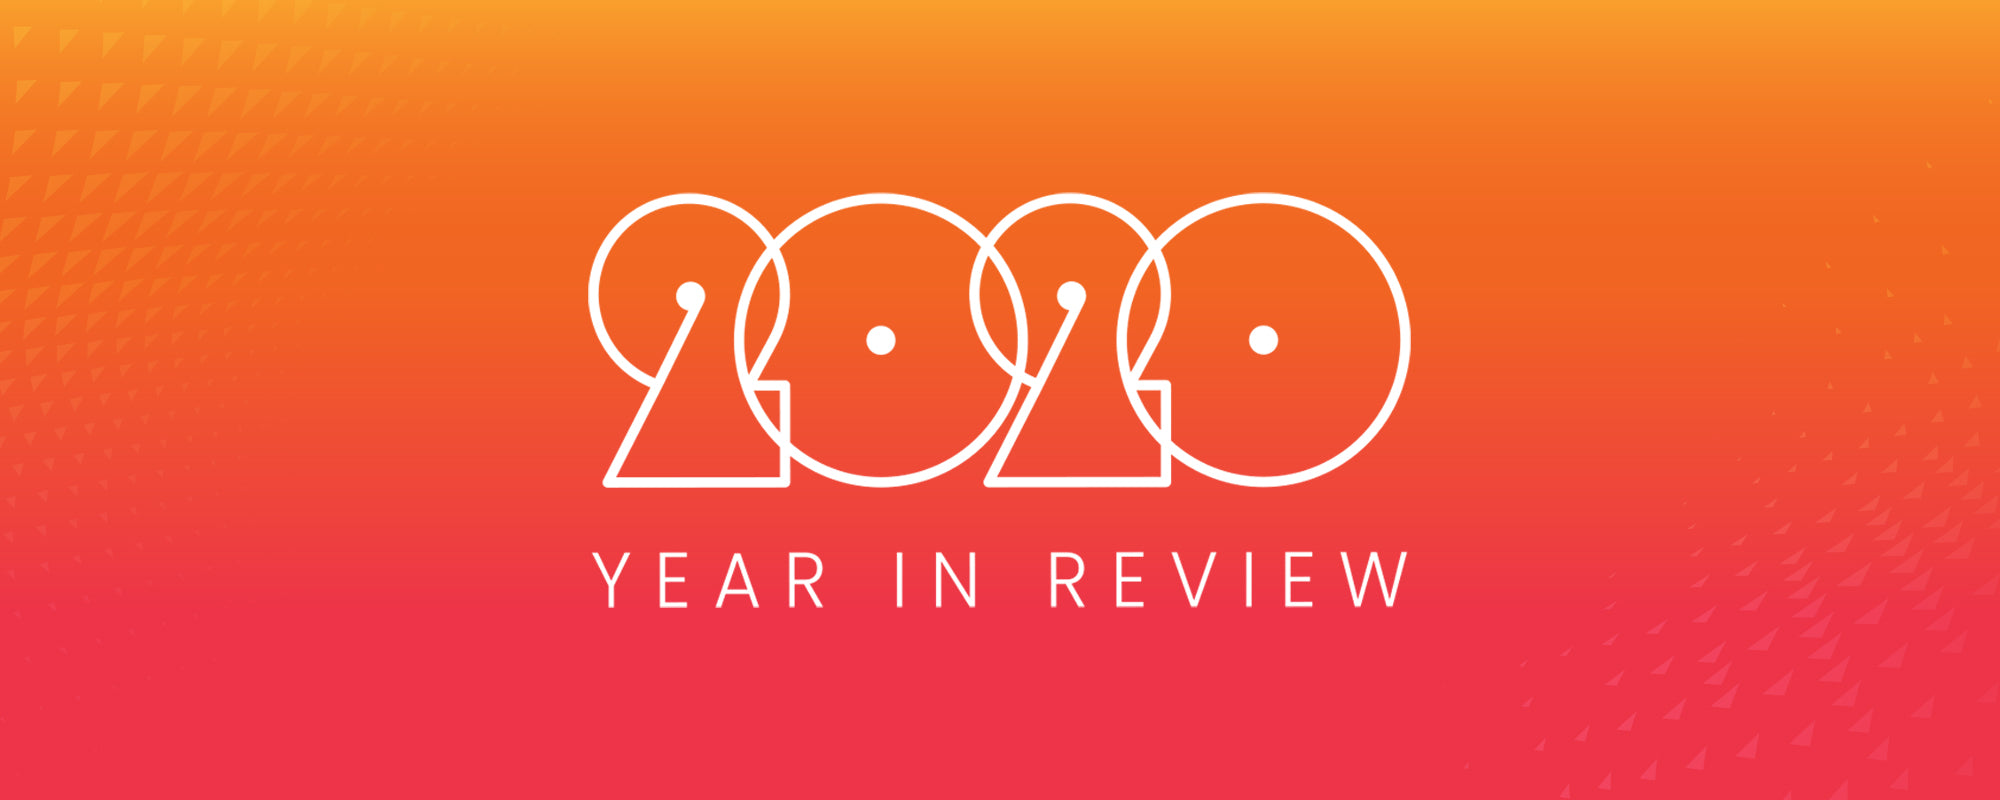 AfterShokz 2020 Year in Review report